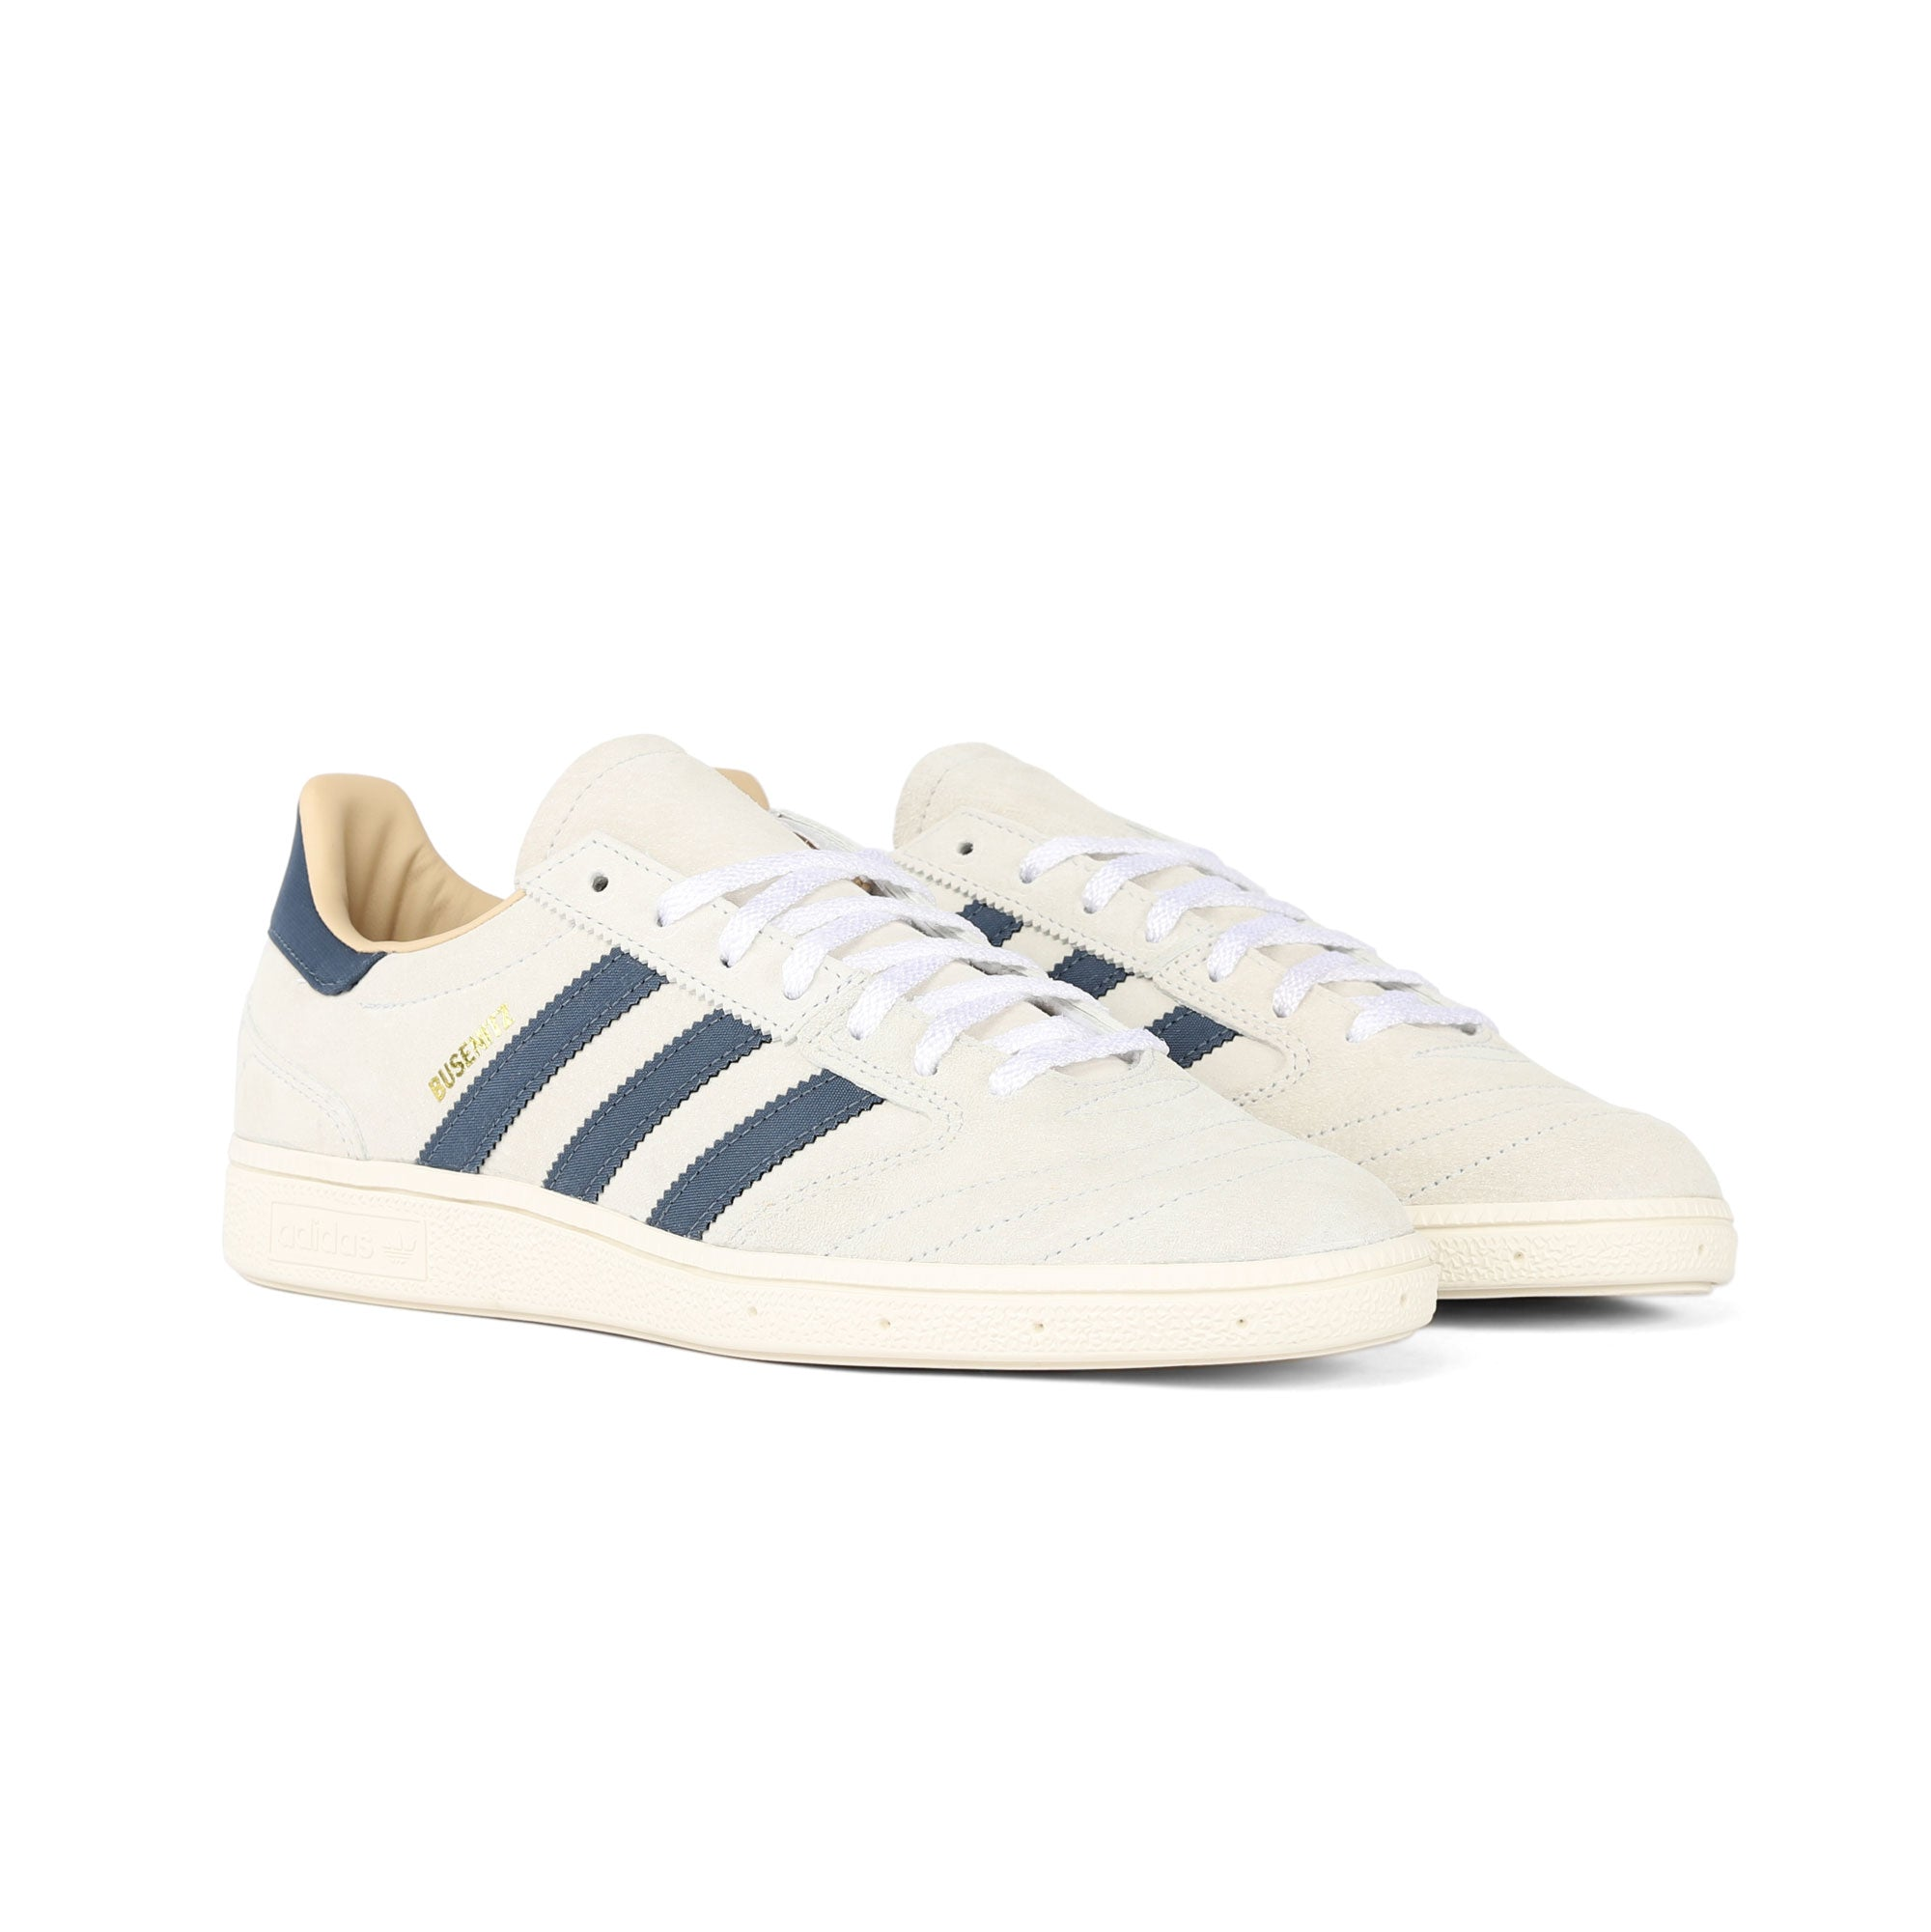 Adidas Busenitz Vintage Product Photo #2